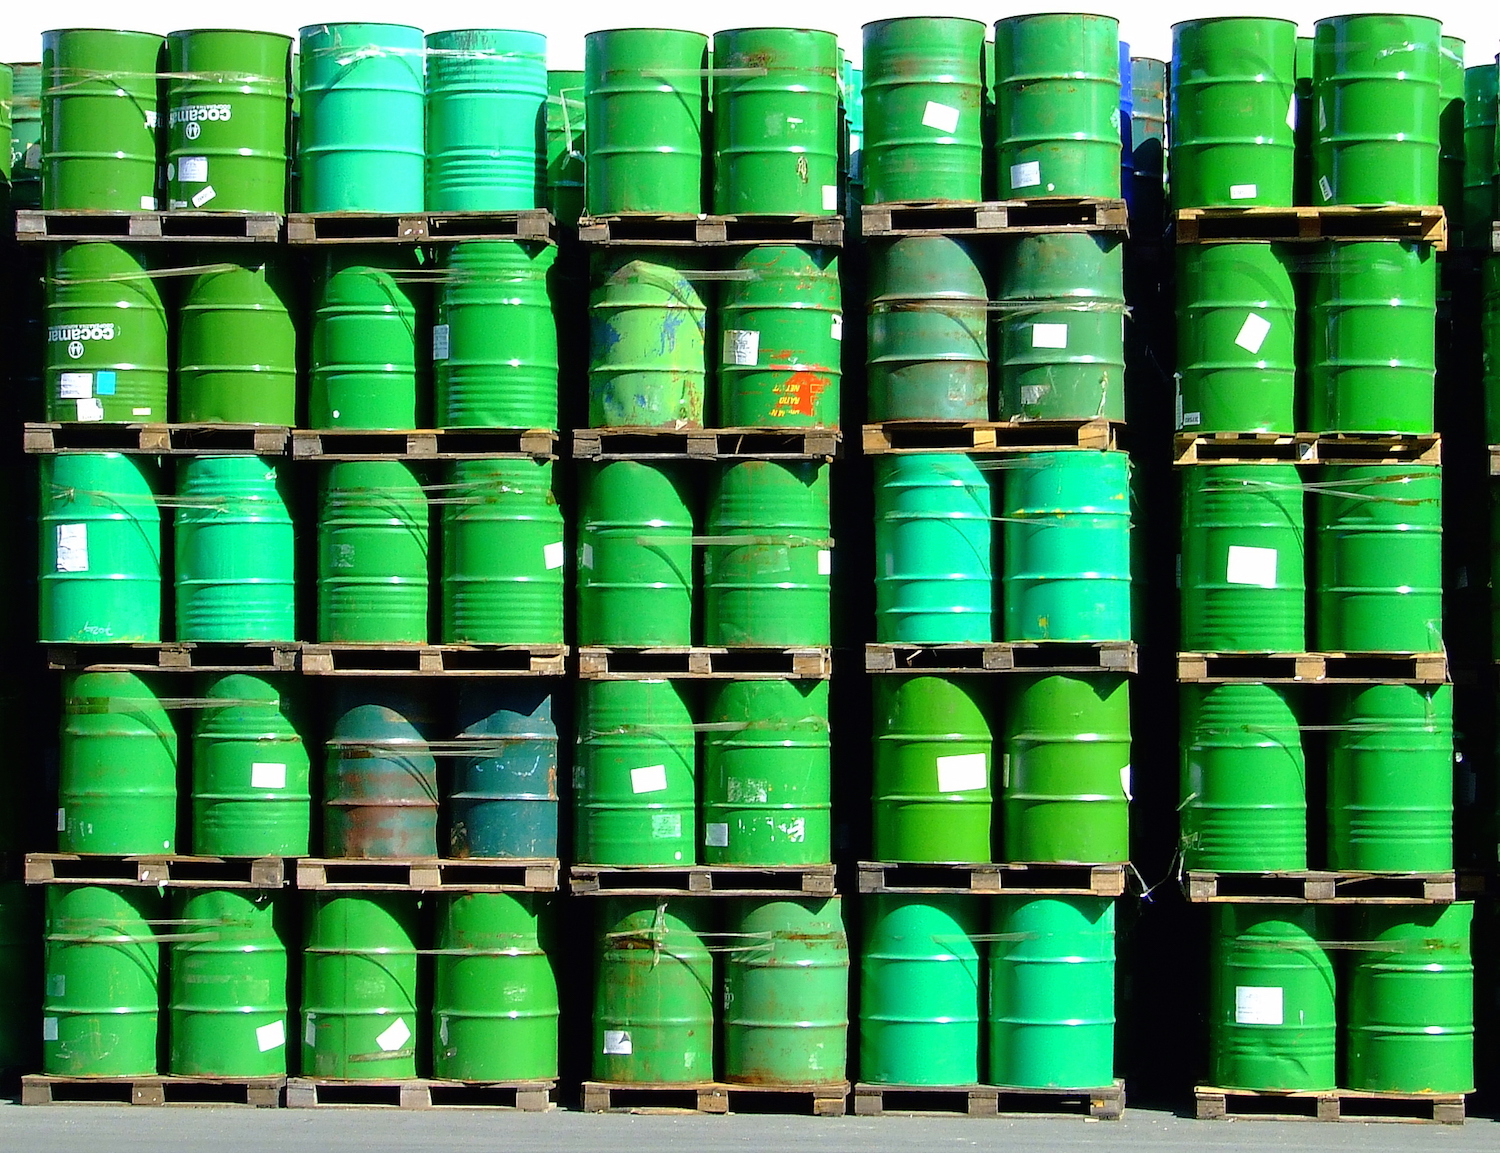 picture of green oil barrels stacked.